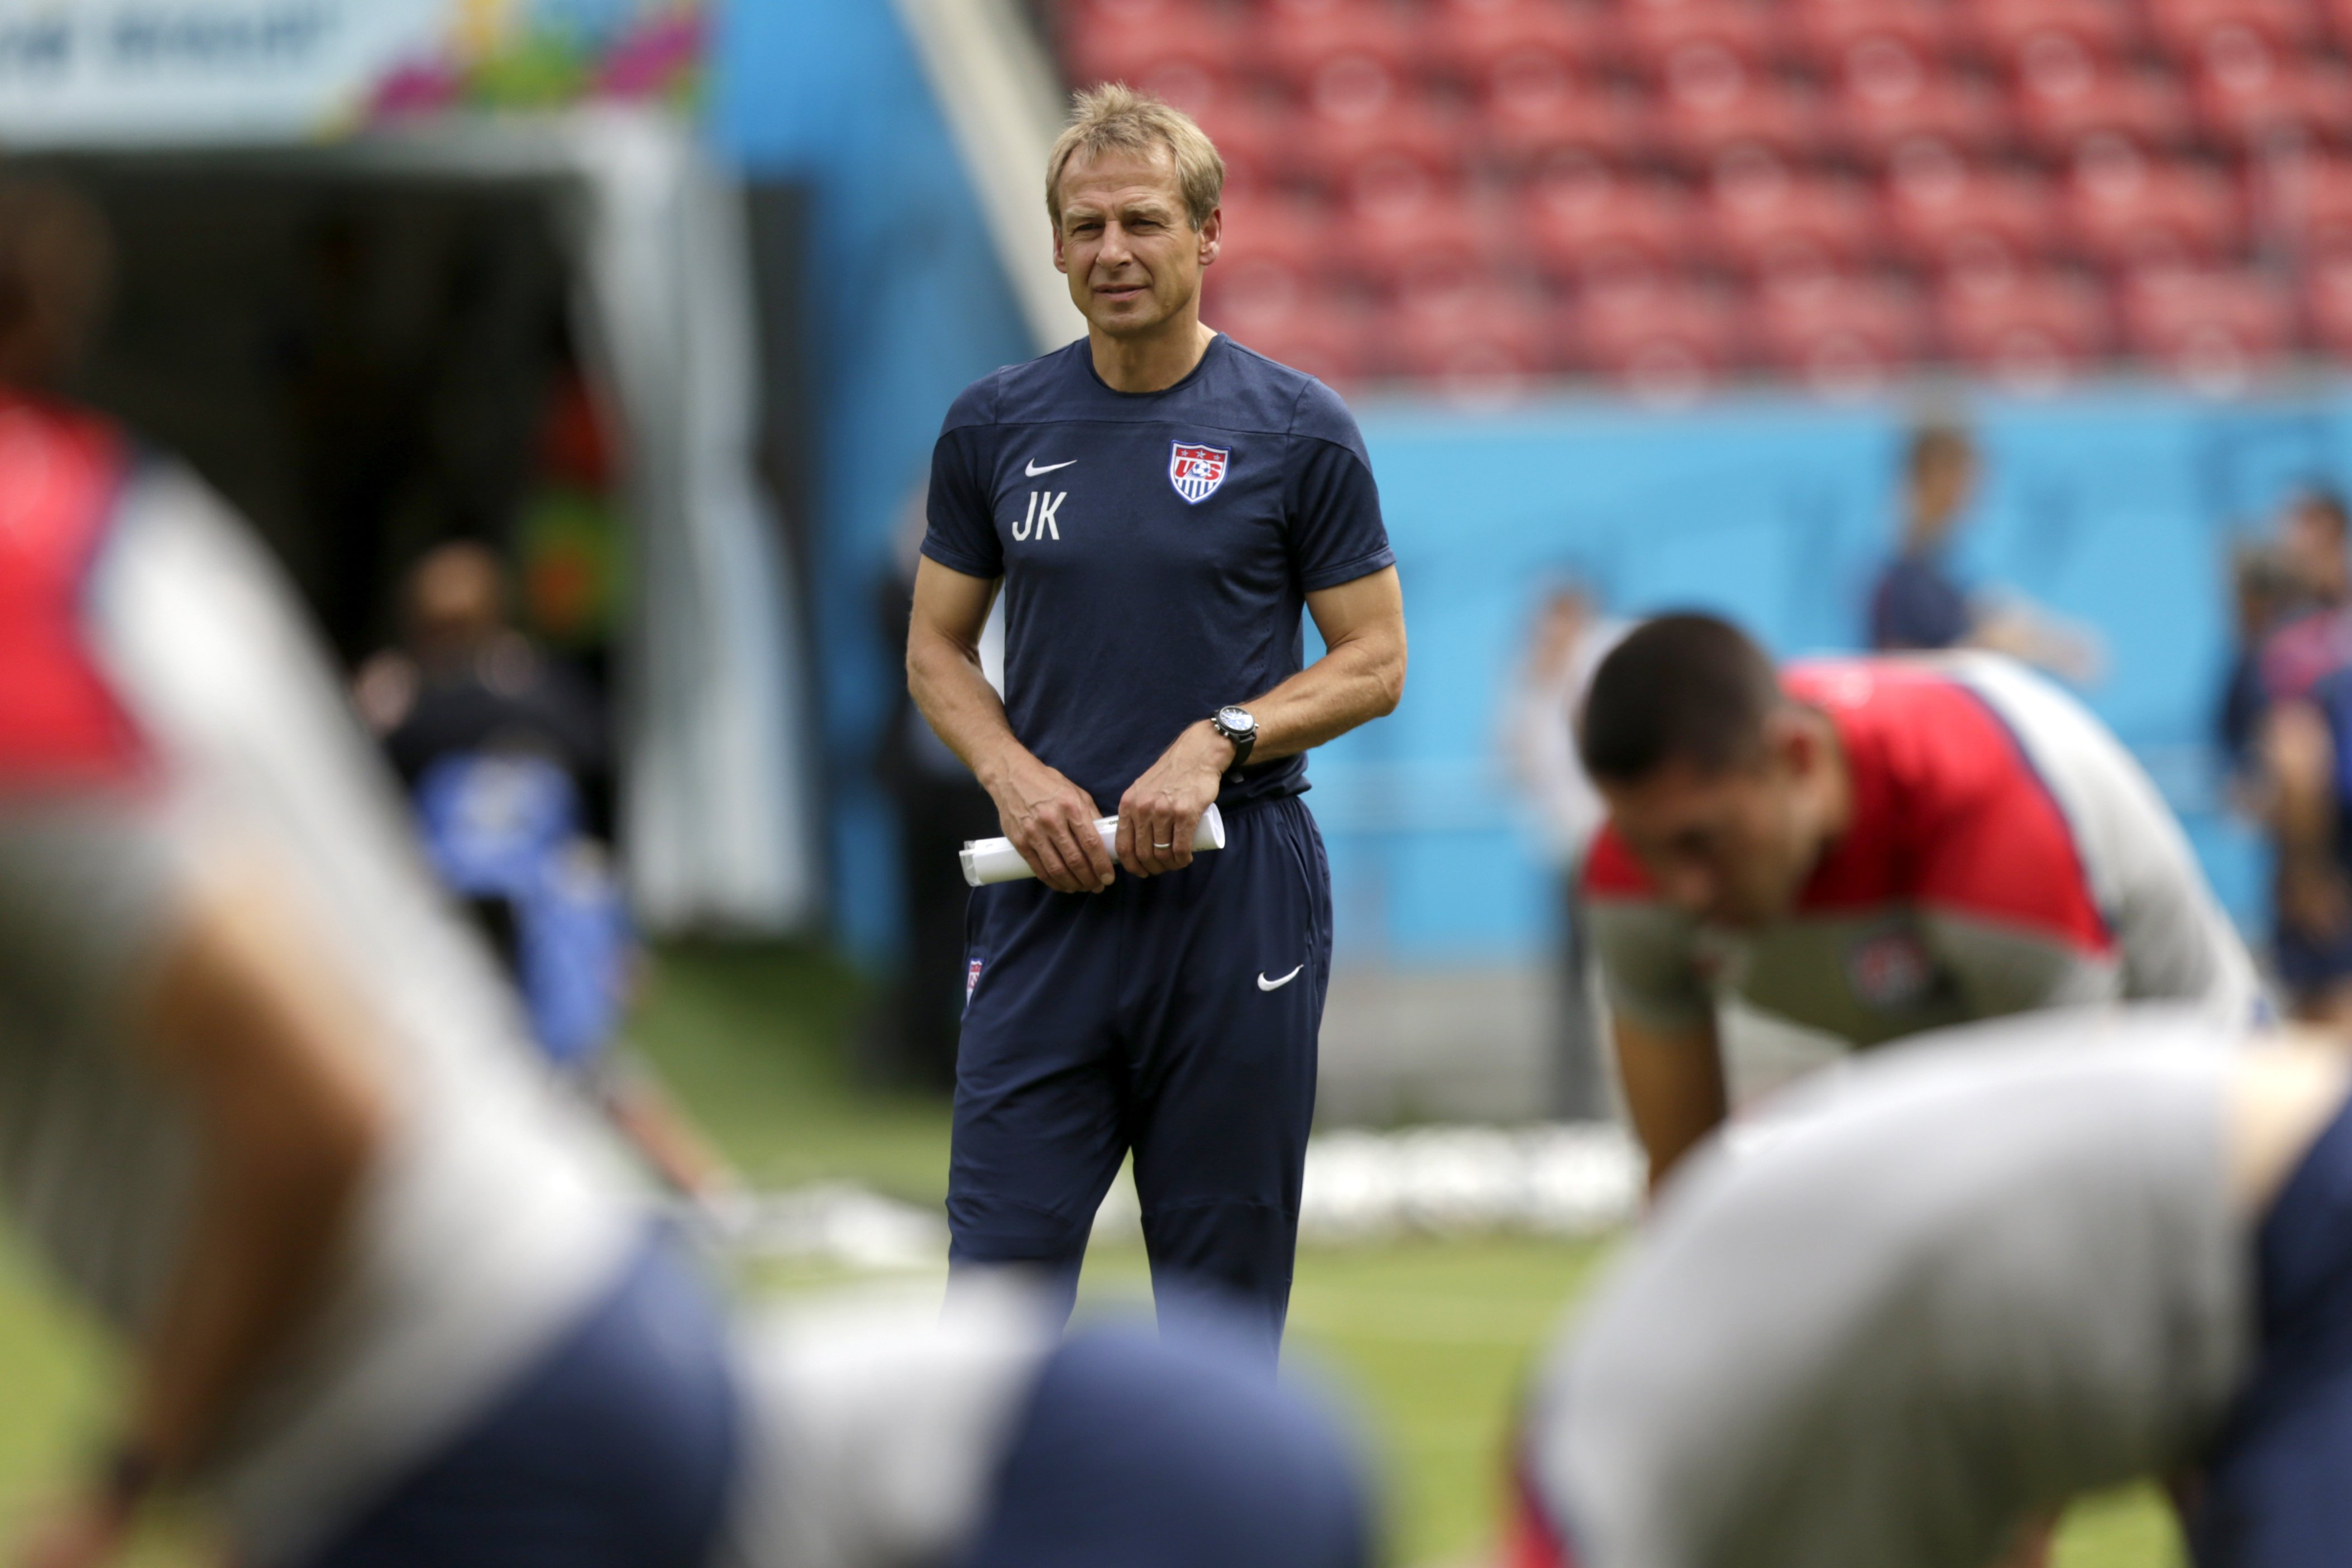 U.S. head coach Jürgen Klinsmann watches as his players stretch during a training session in Recife, Brazil, on June 25, 2014